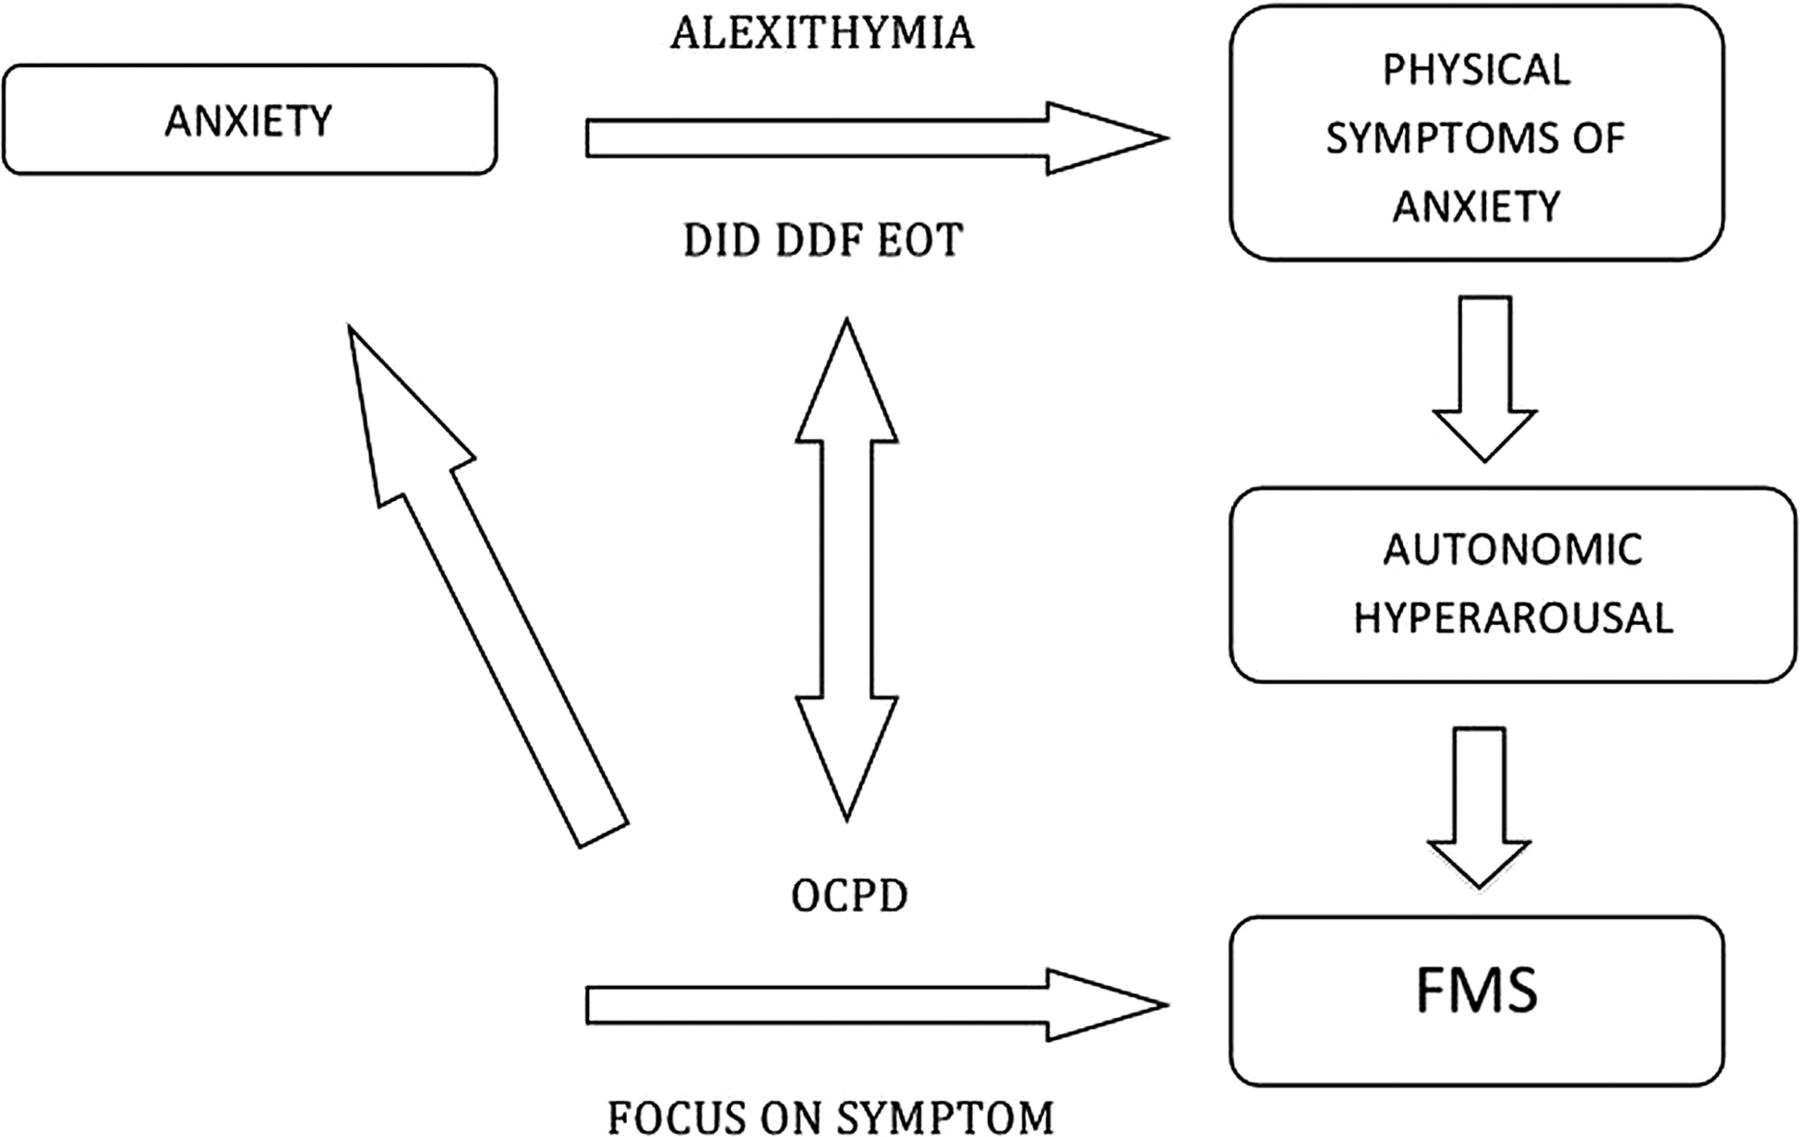 The role of alexithymia in the development of functional